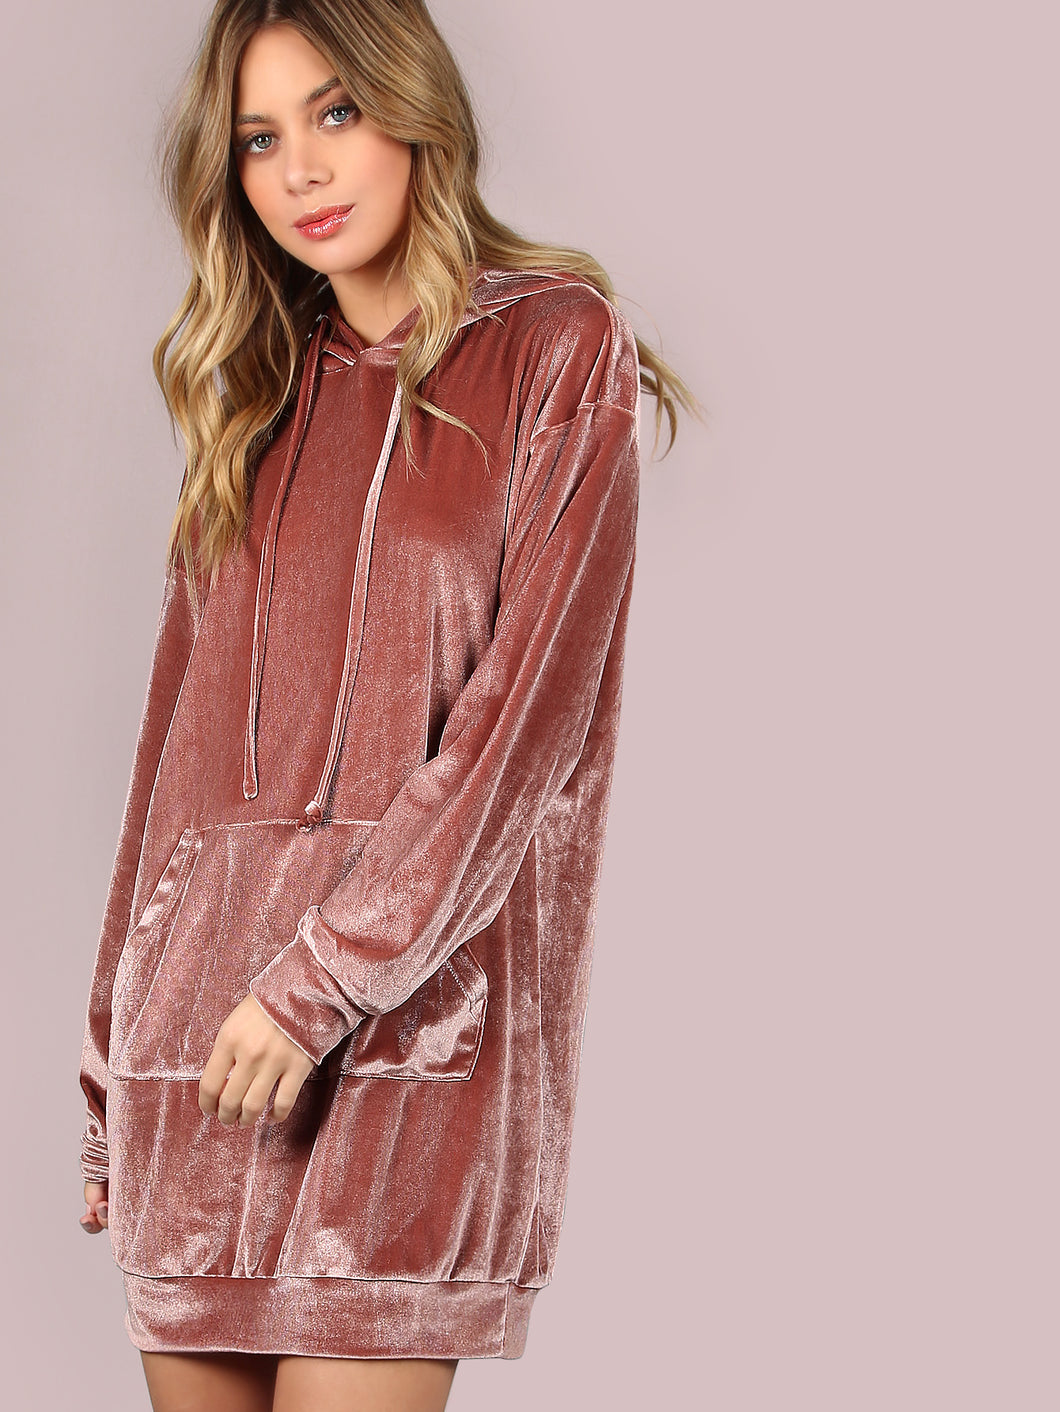 All the Hearts Pink Velvet Hoodie Tunic